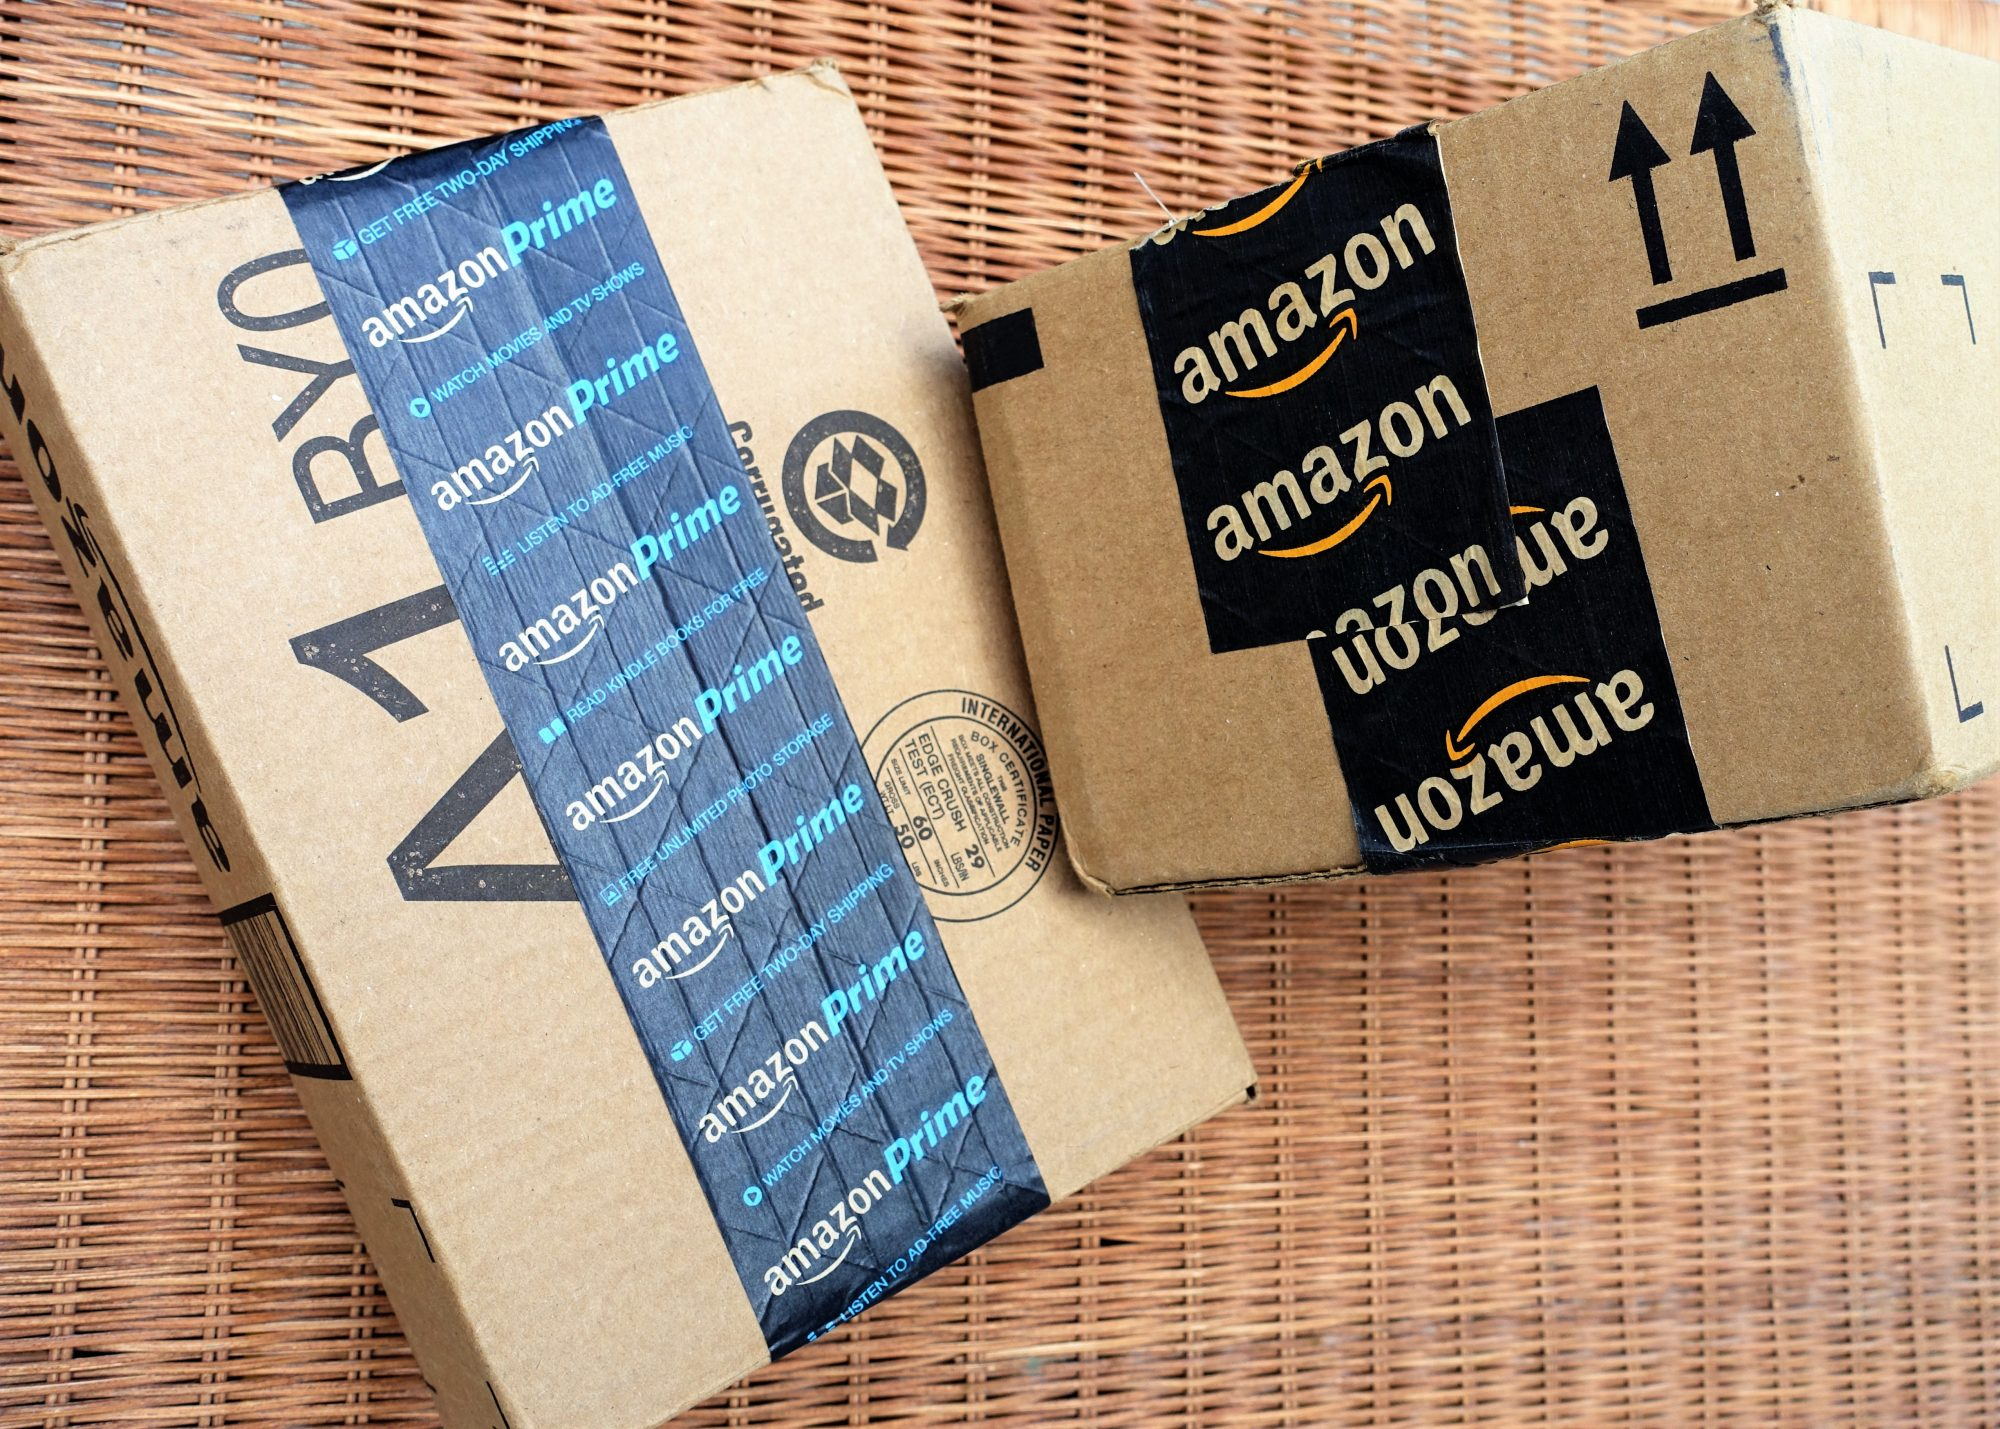 Amazon shipping packages with Prime packing tape